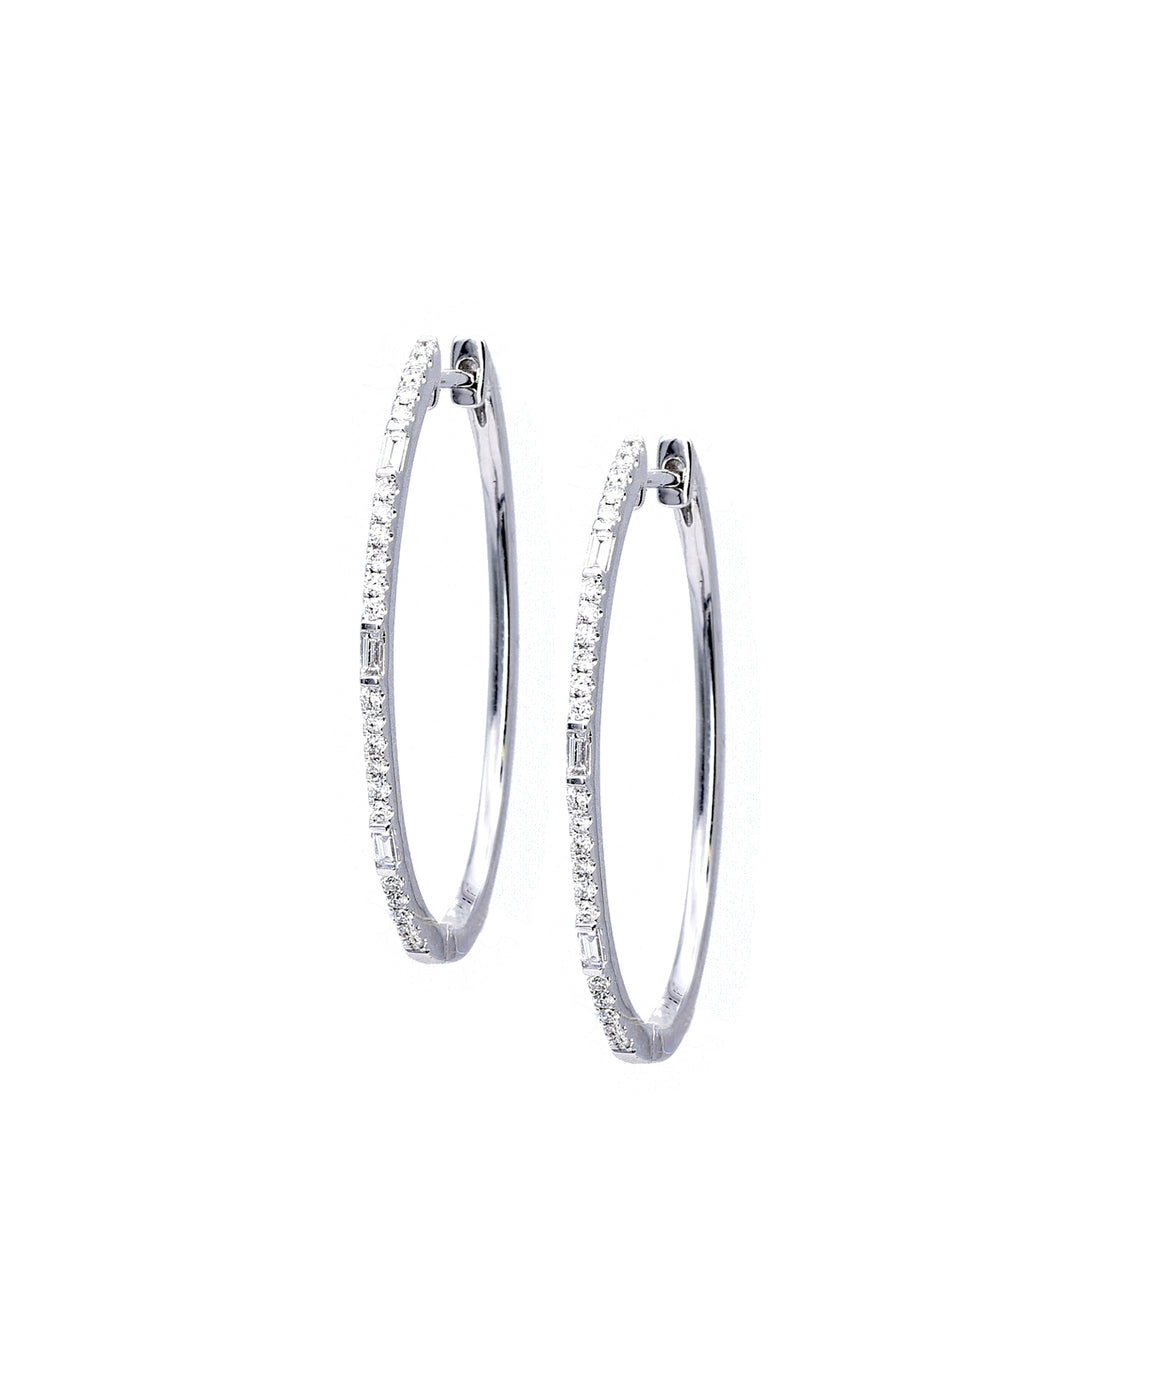 Oval hoop earrings with baguettes - Lesley Ann Jewels